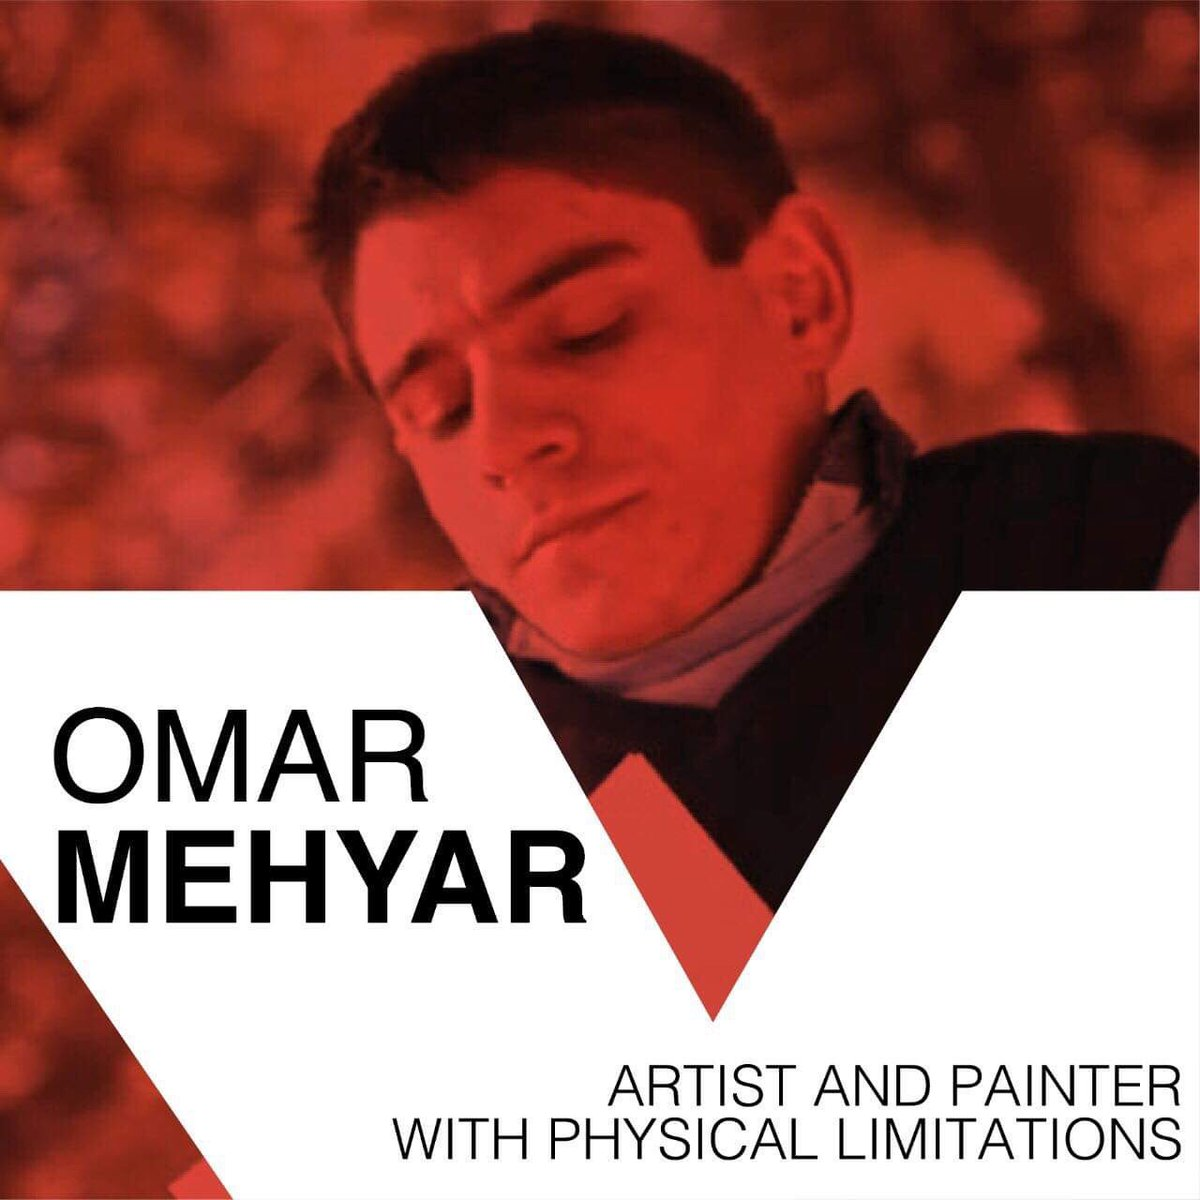 We are glad to announce that, our fourth speaker will be Omar Mehyar💫https://www.facebook.com/439046570158865/posts/444406066289582?s=100005001768789&sfns=mo …#HaveHeart #TEDxDabouq #TED2019 #TEDx